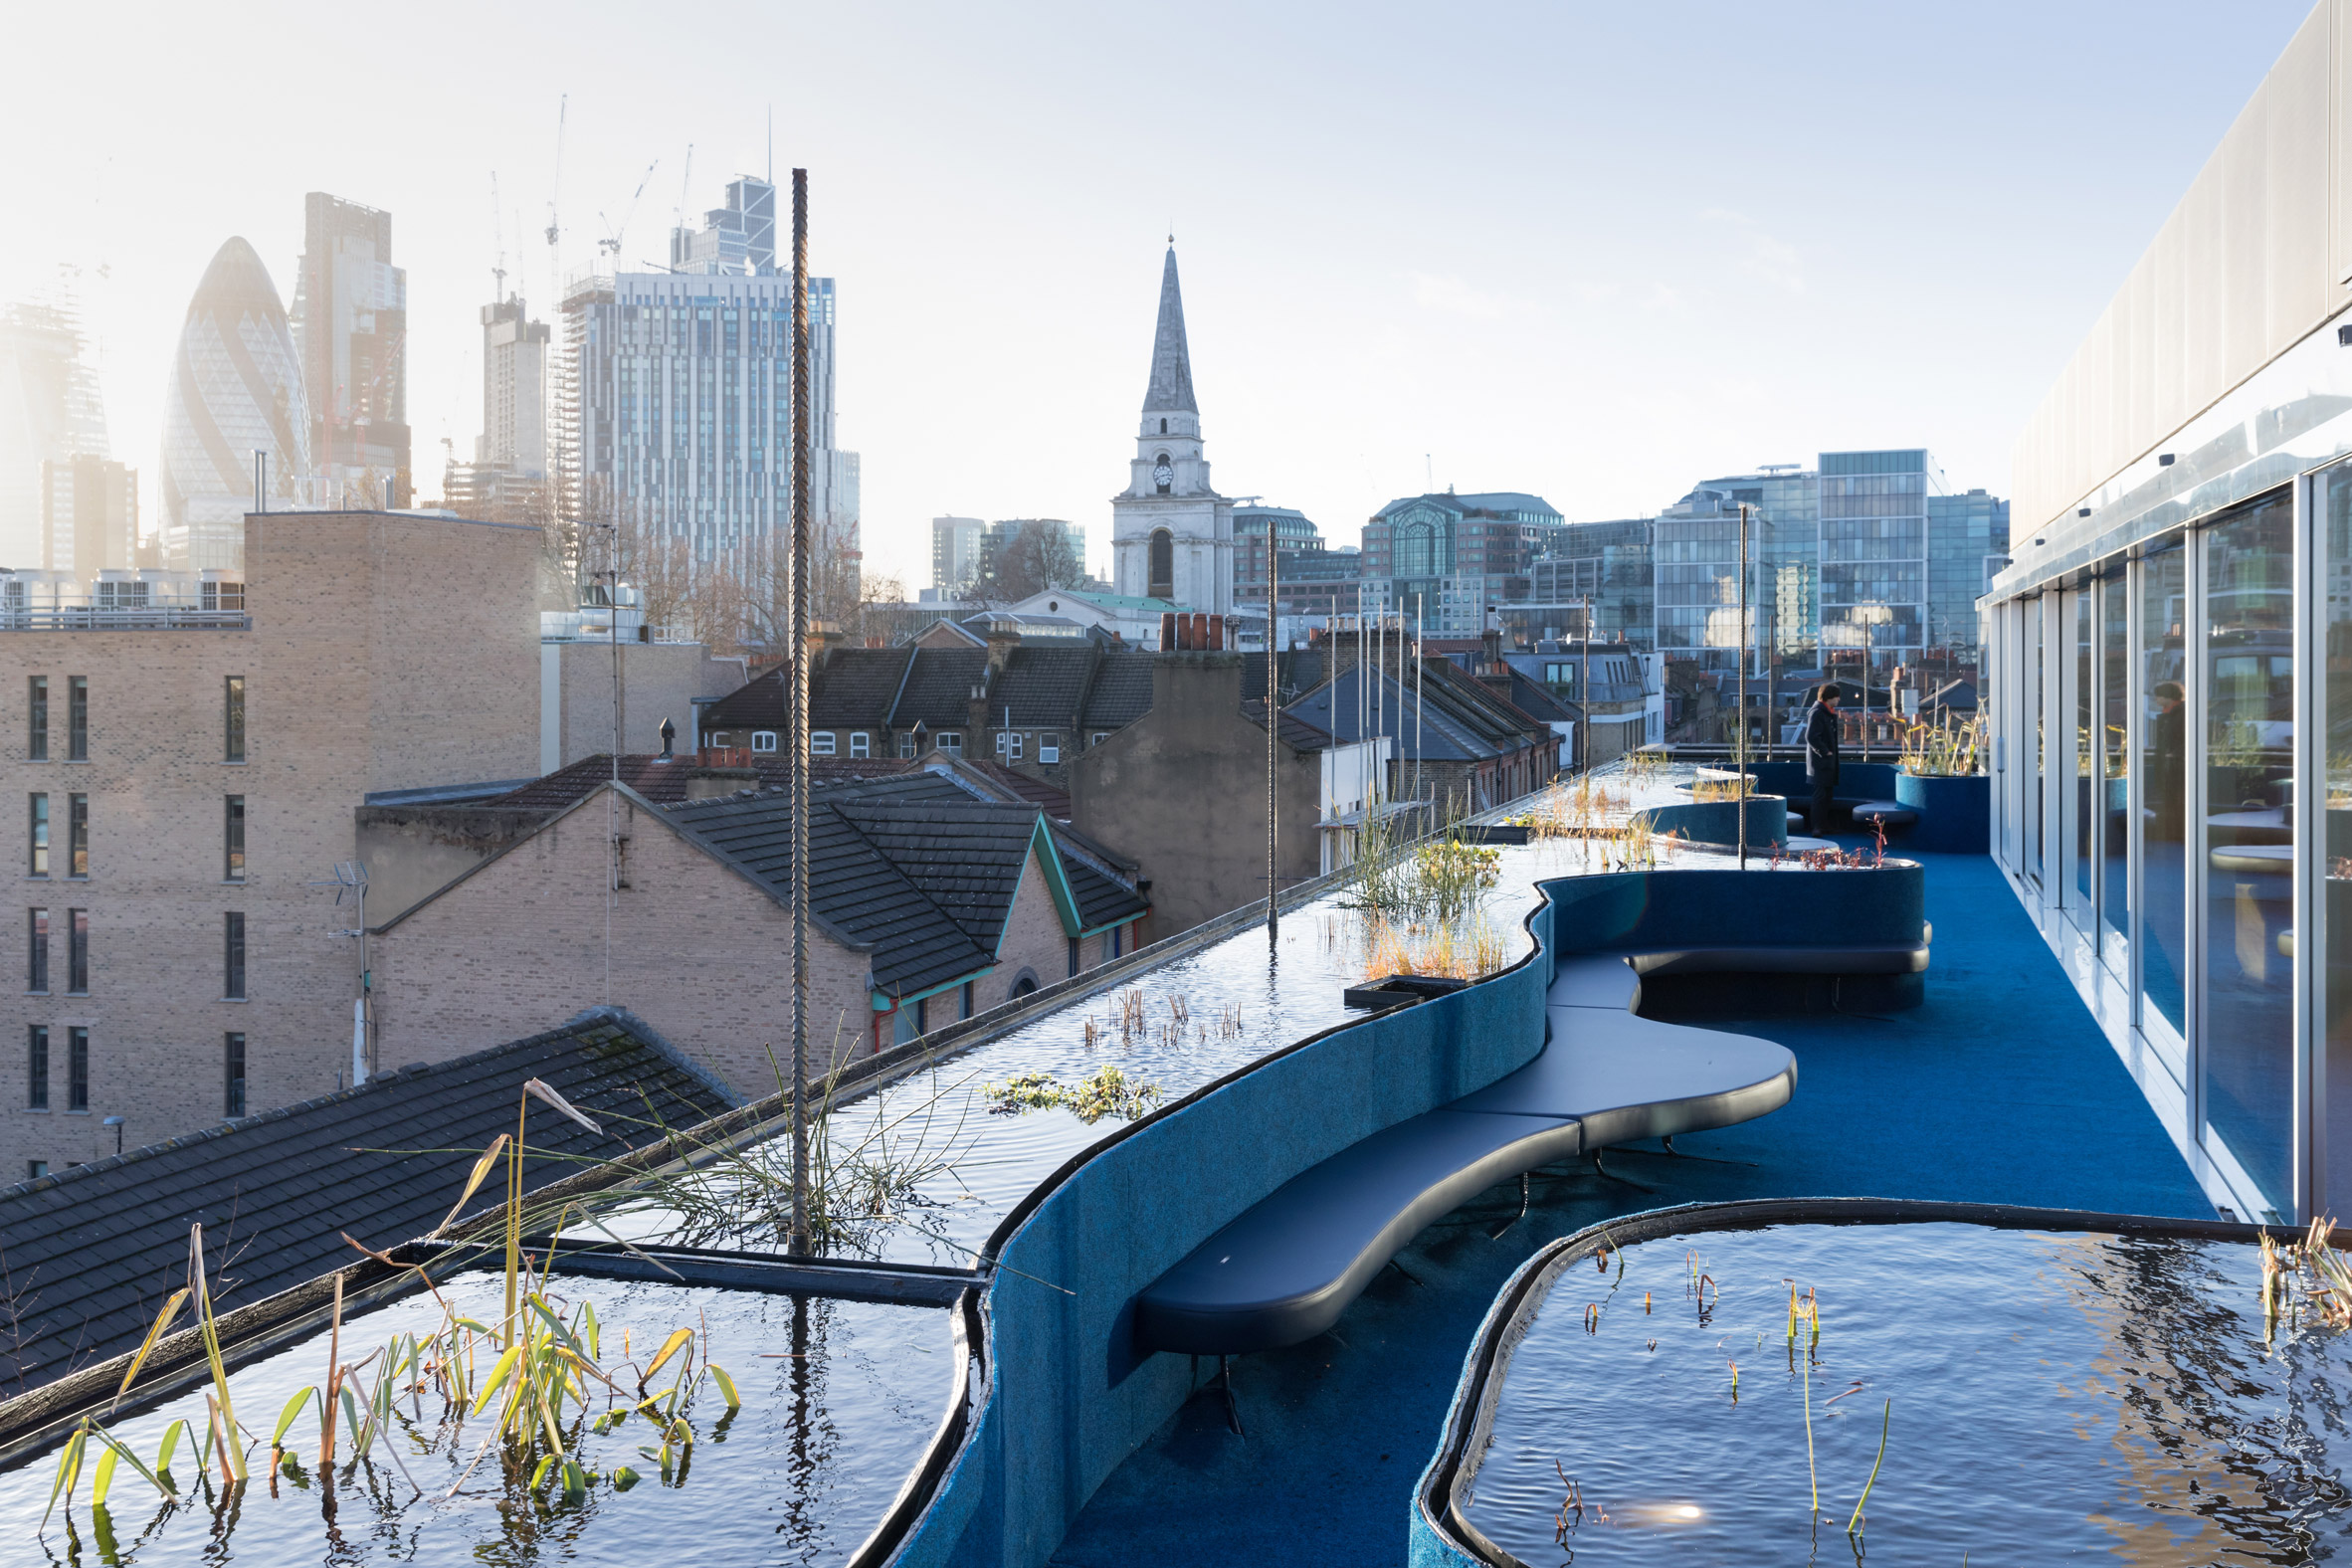 SelgasCano adds roof extension with pools and plants to Second Home offices in London